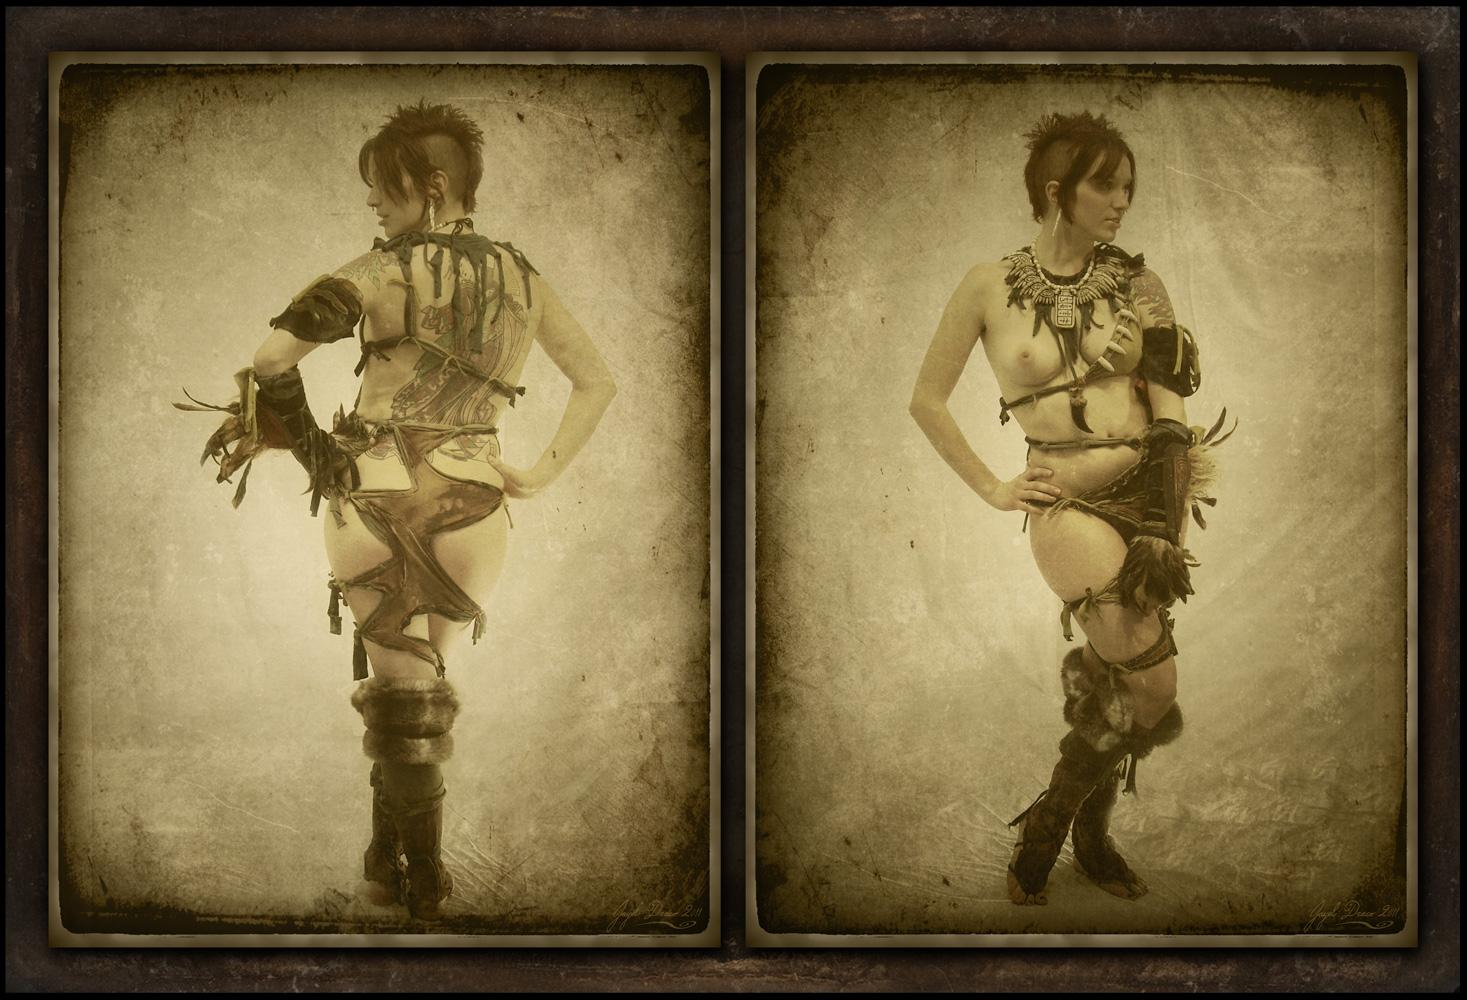 NURIDIAN PRIESTESS - Vintage Tribal Diptych - Costume, Photography, and Photomanipulation by Jayel Draco